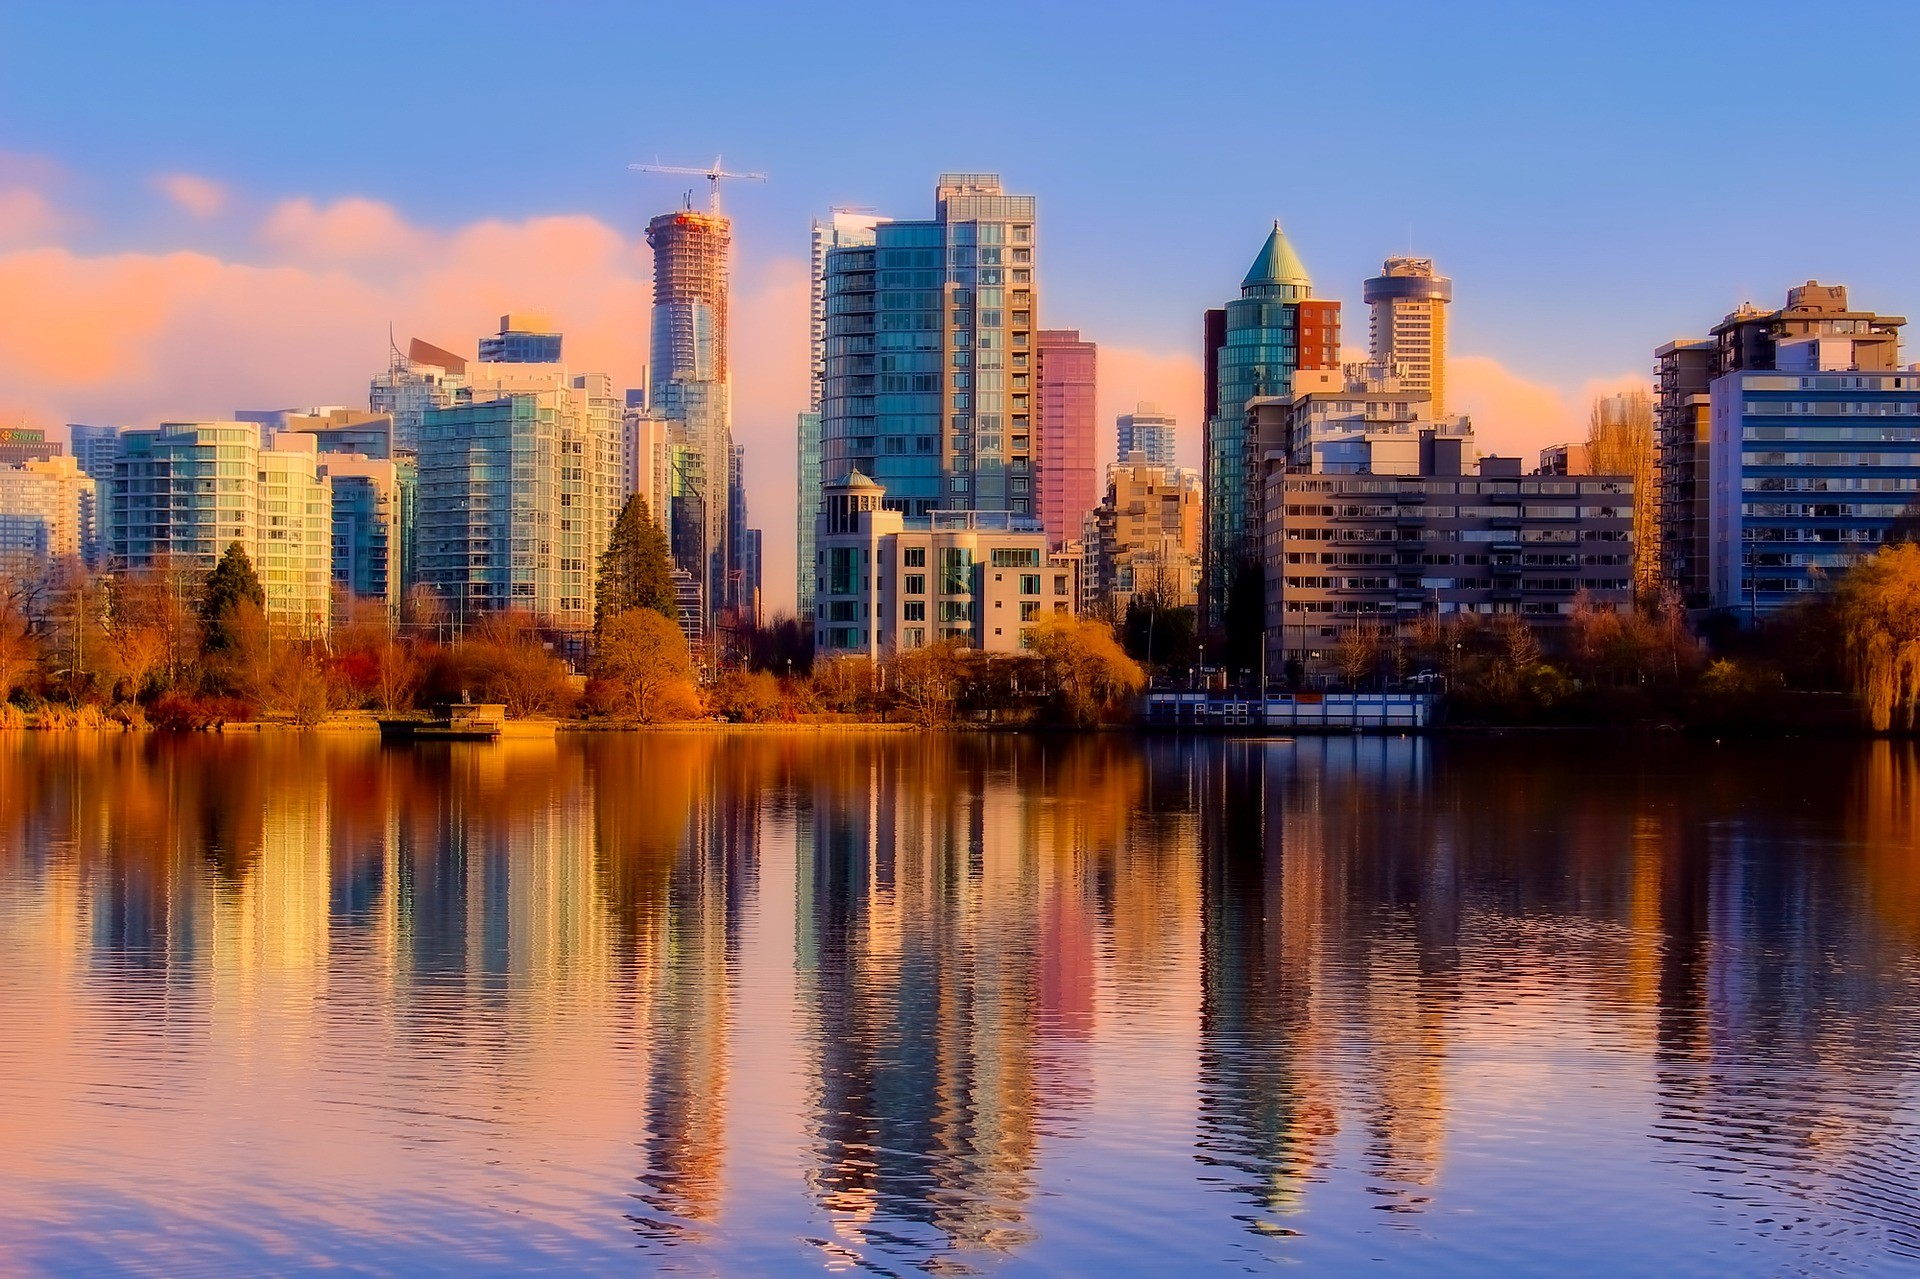 a view of the Vancouver, British Columbia skyline at dusk